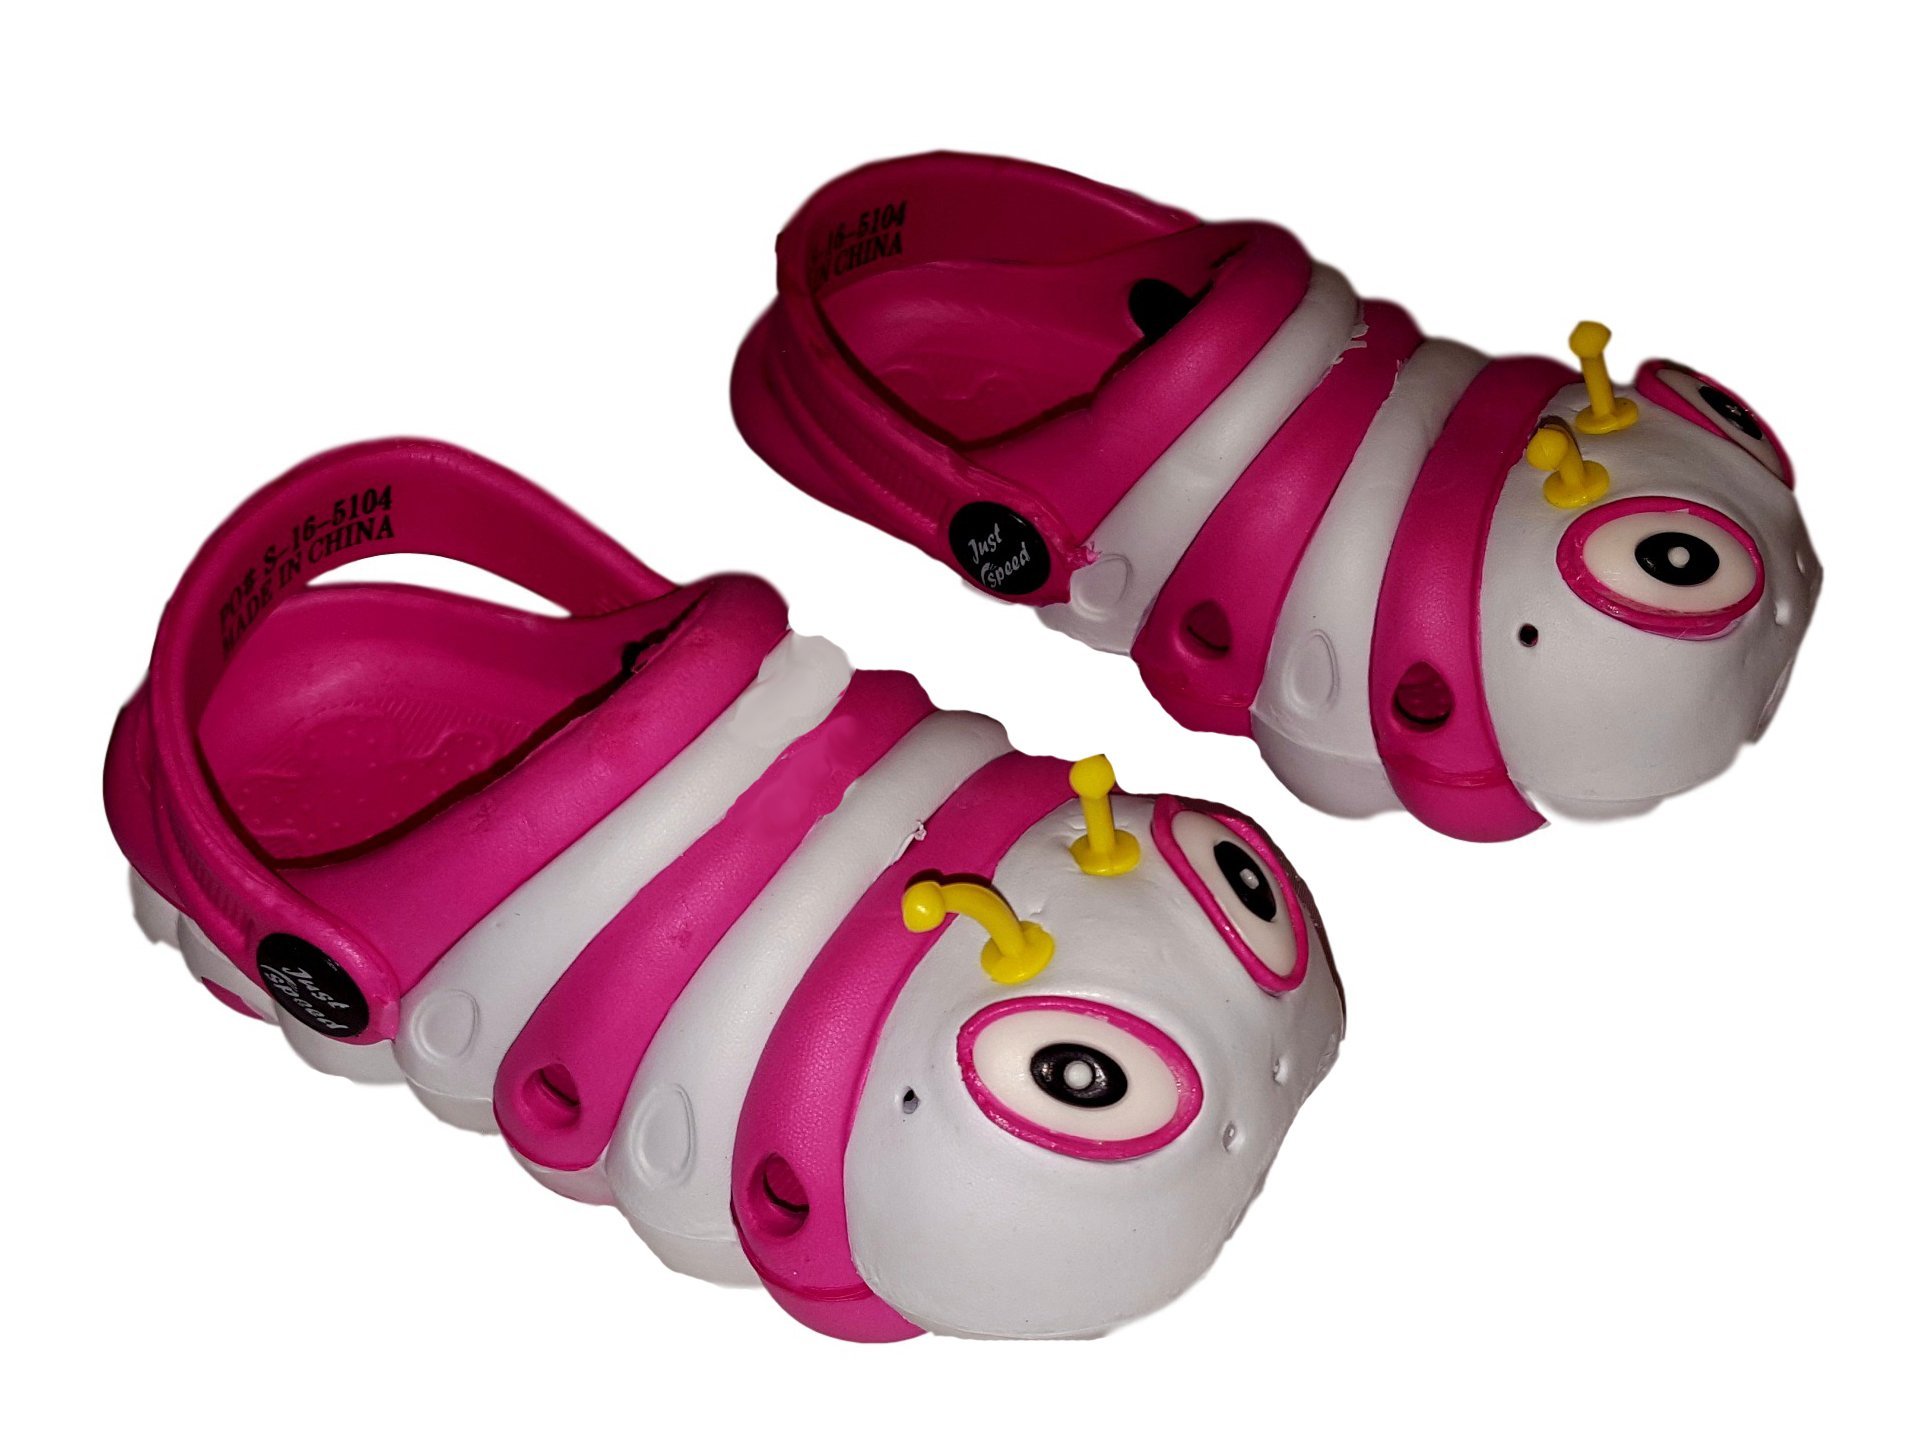 Caterpillar Bug Clogs for Infant or Toddler Boys and Girls Unisex Sandal (8M, White - Fuschia)